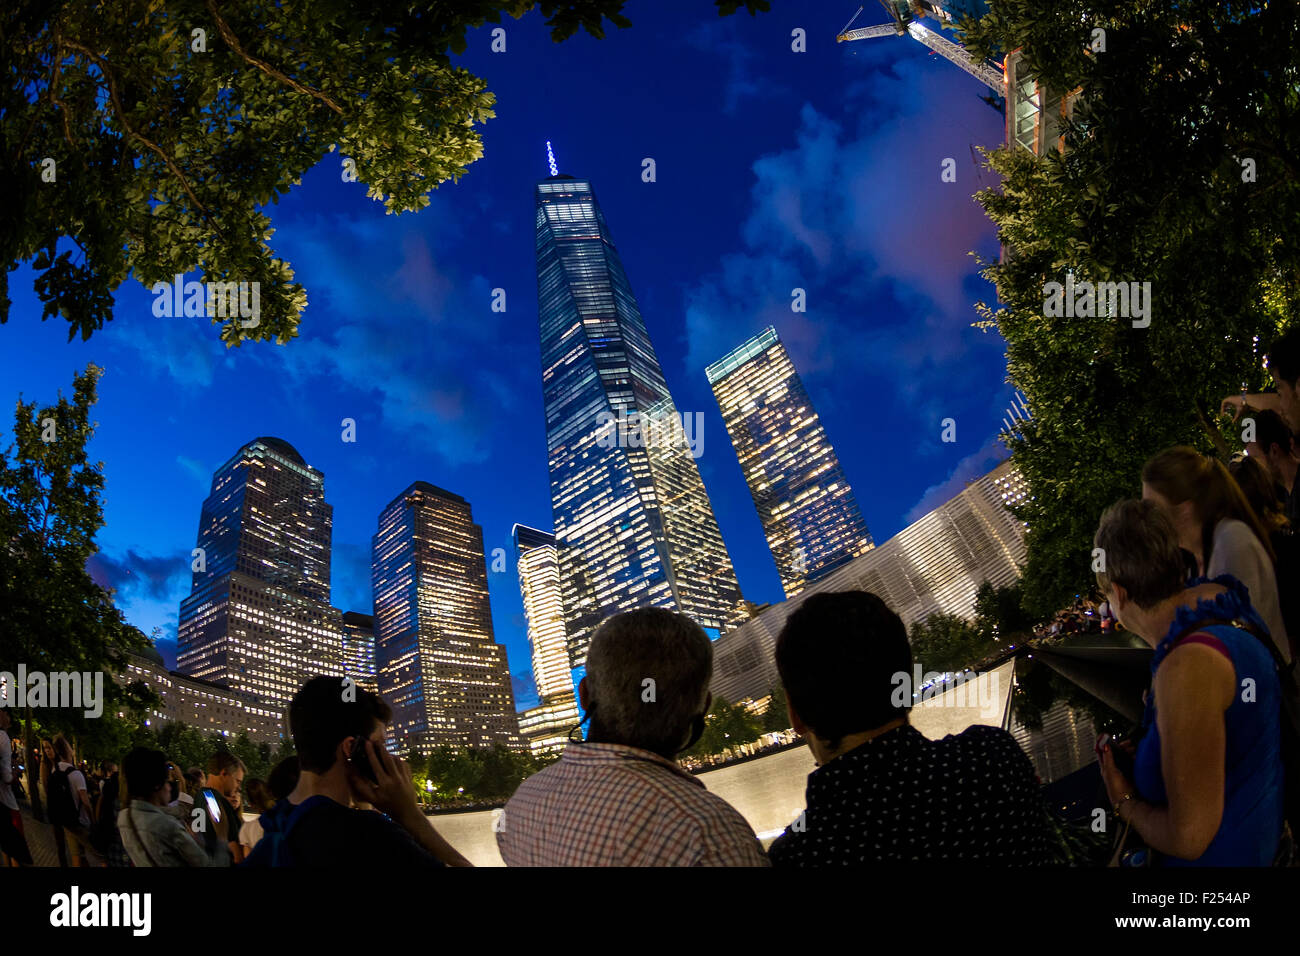 New York, NY - September 11th 2015 - People watch night fall at the 911 Memorial and Museum on the 13th Anniversary - Stock Image